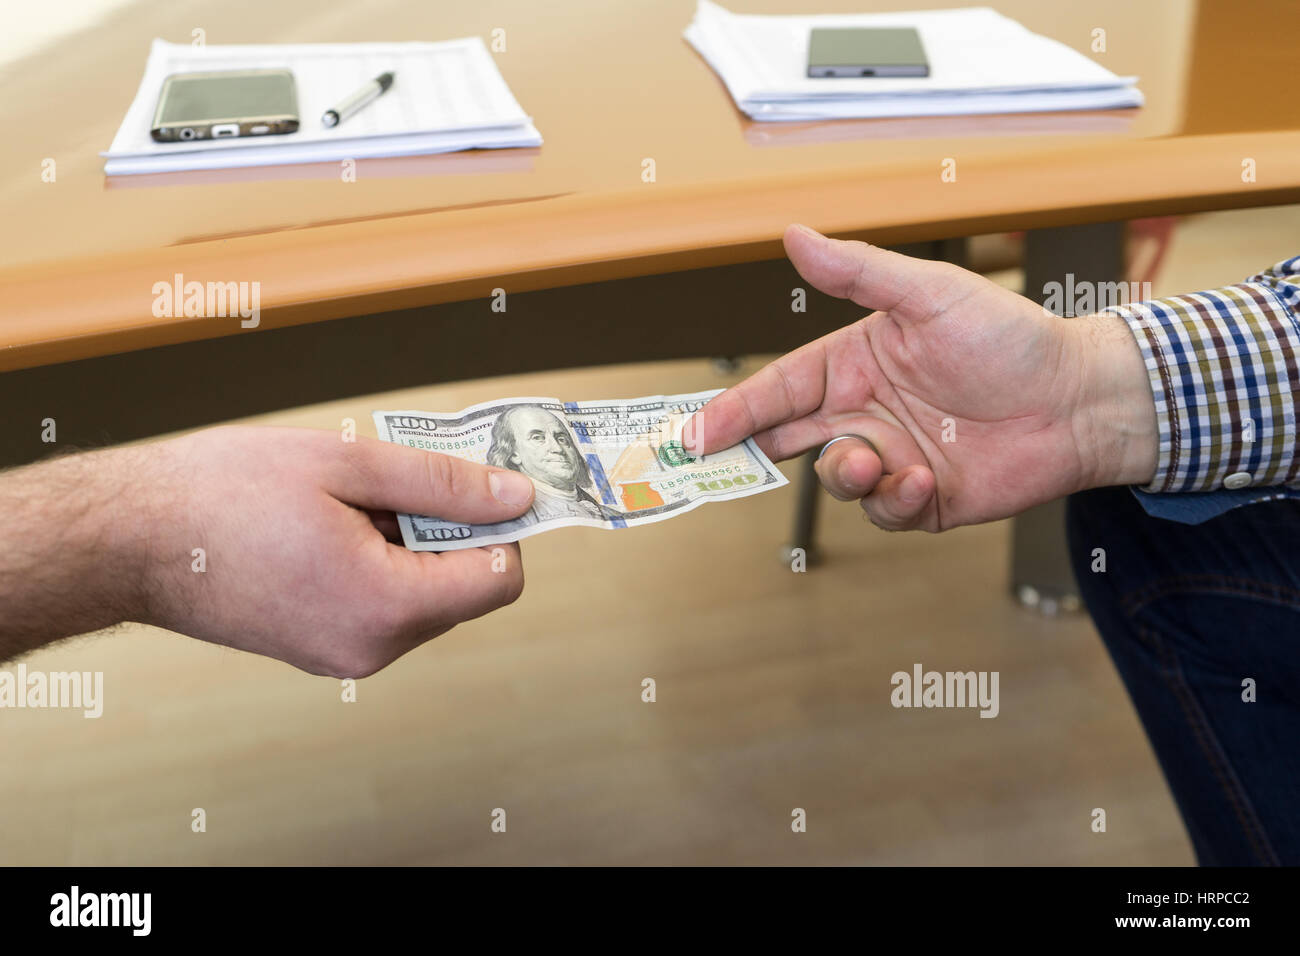 Man offering of hundred dollar bill. Hands close up. Corruption concept.  United States Dollars (or USD). - Stock Image